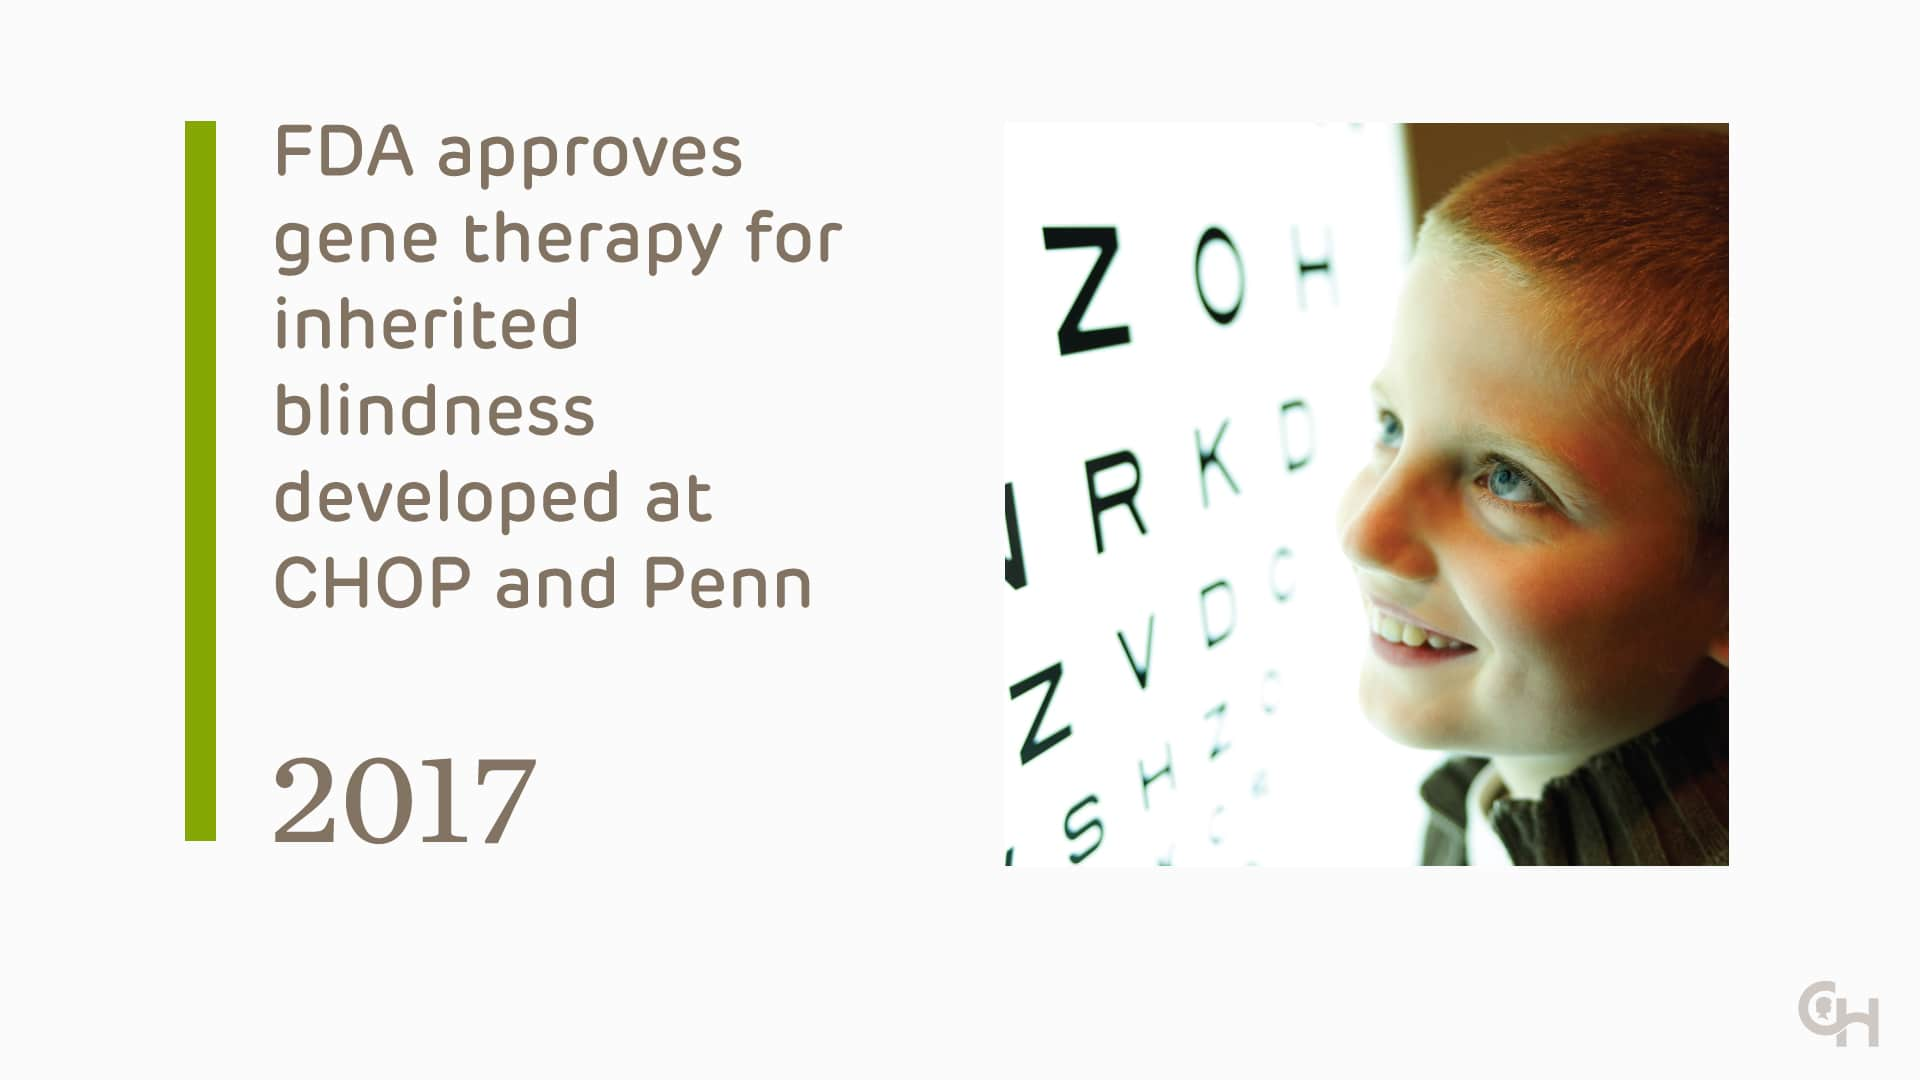 FDA approves CHOP developed gene therapy for inherited blindness - 2019